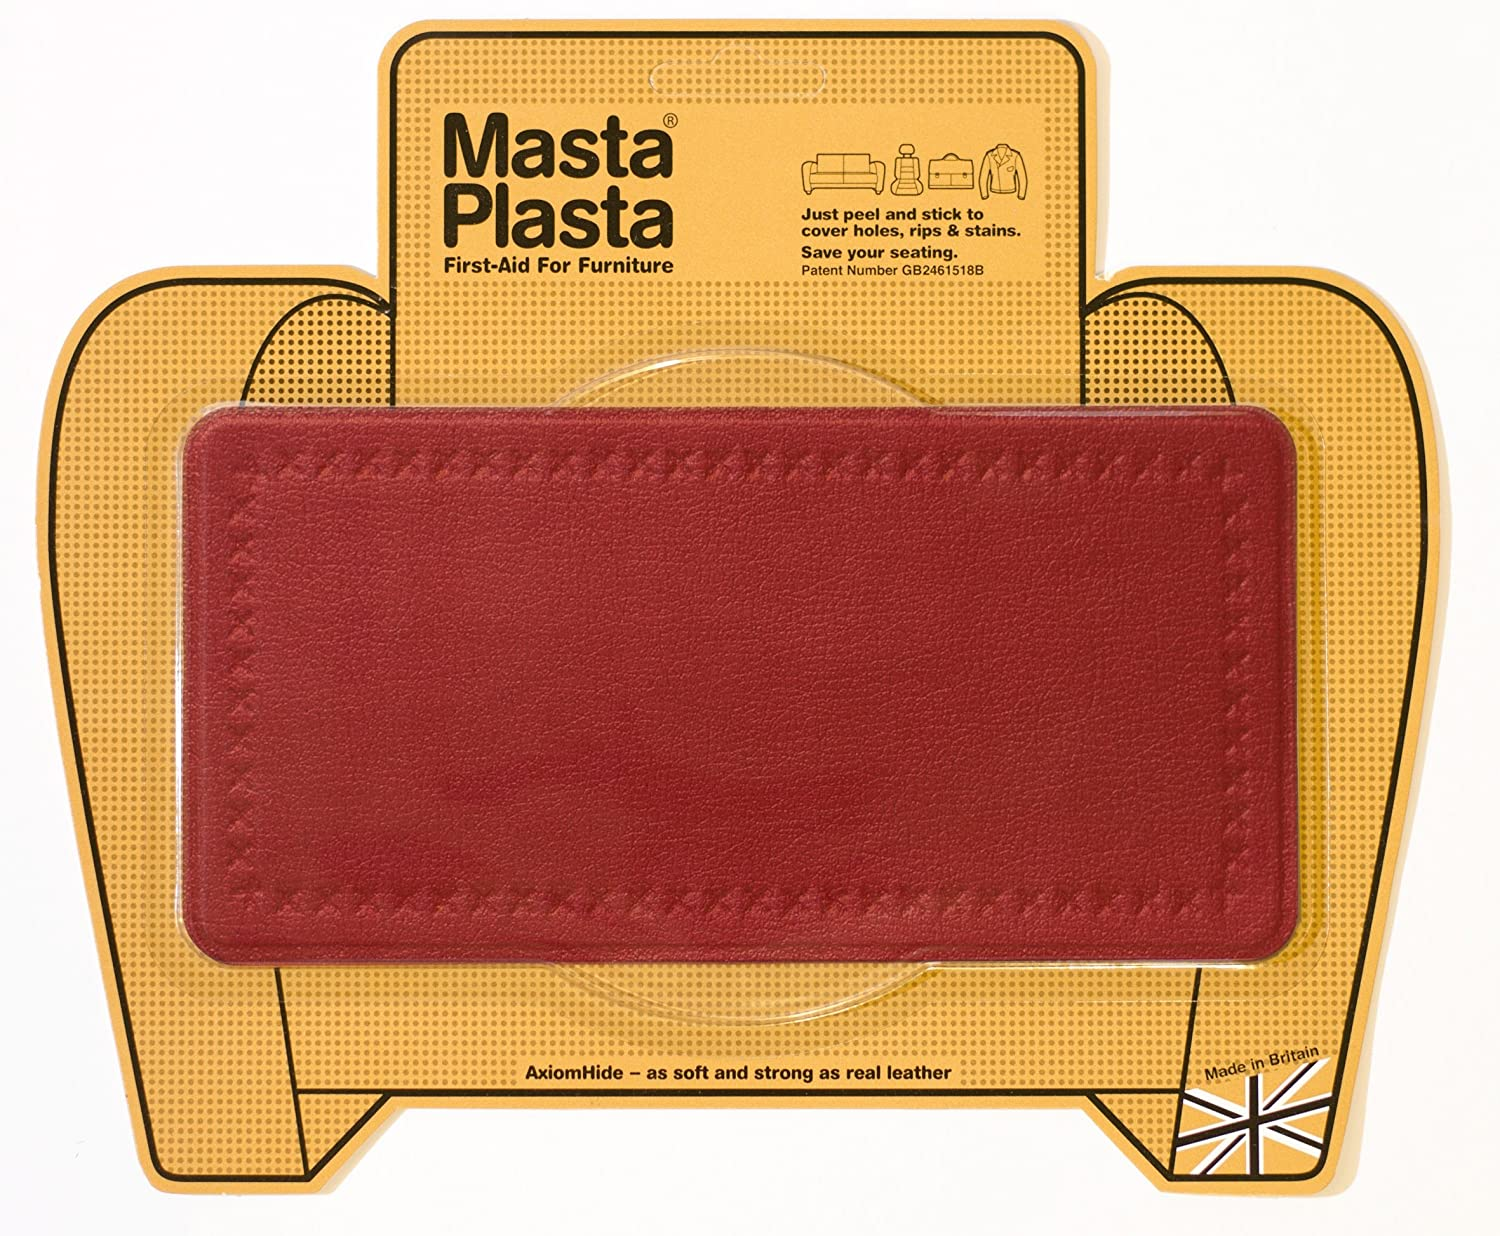 leather sofa repair kits for rips bentley furniture aid peel stick mastaplasta patch holes